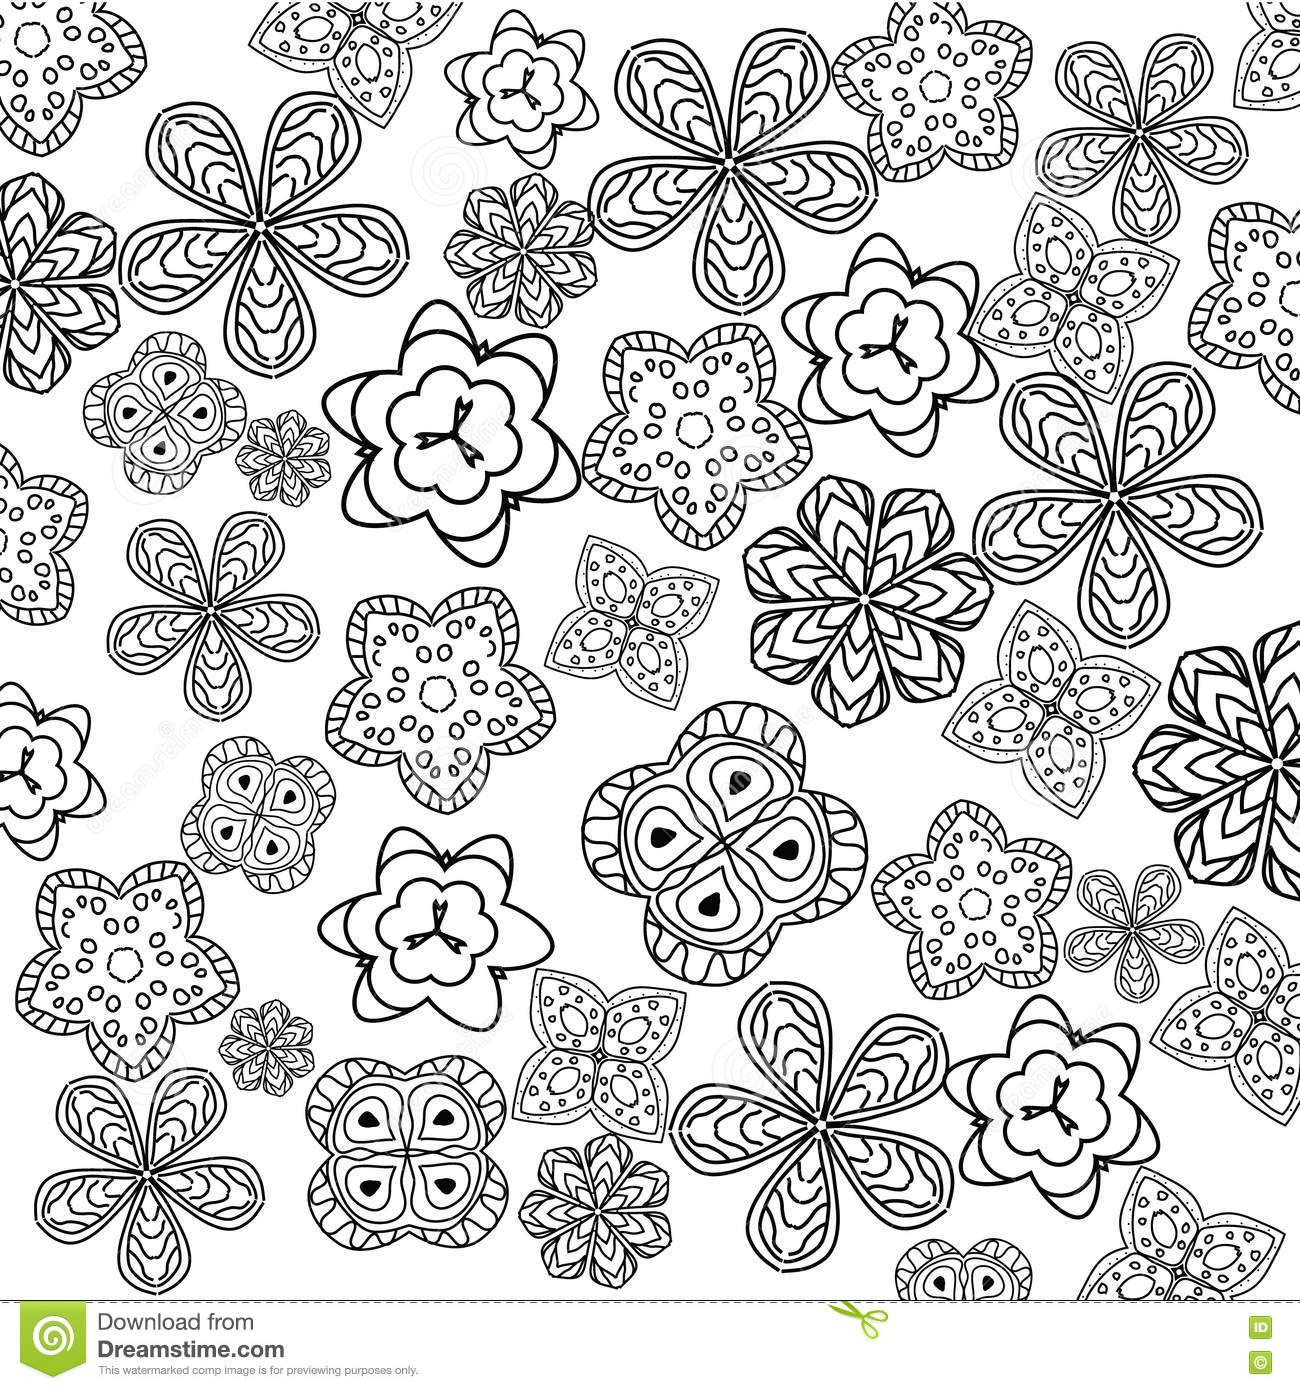 Coloring pages relaxing - Royalty Free Vector Download Relaxing Coloring Page